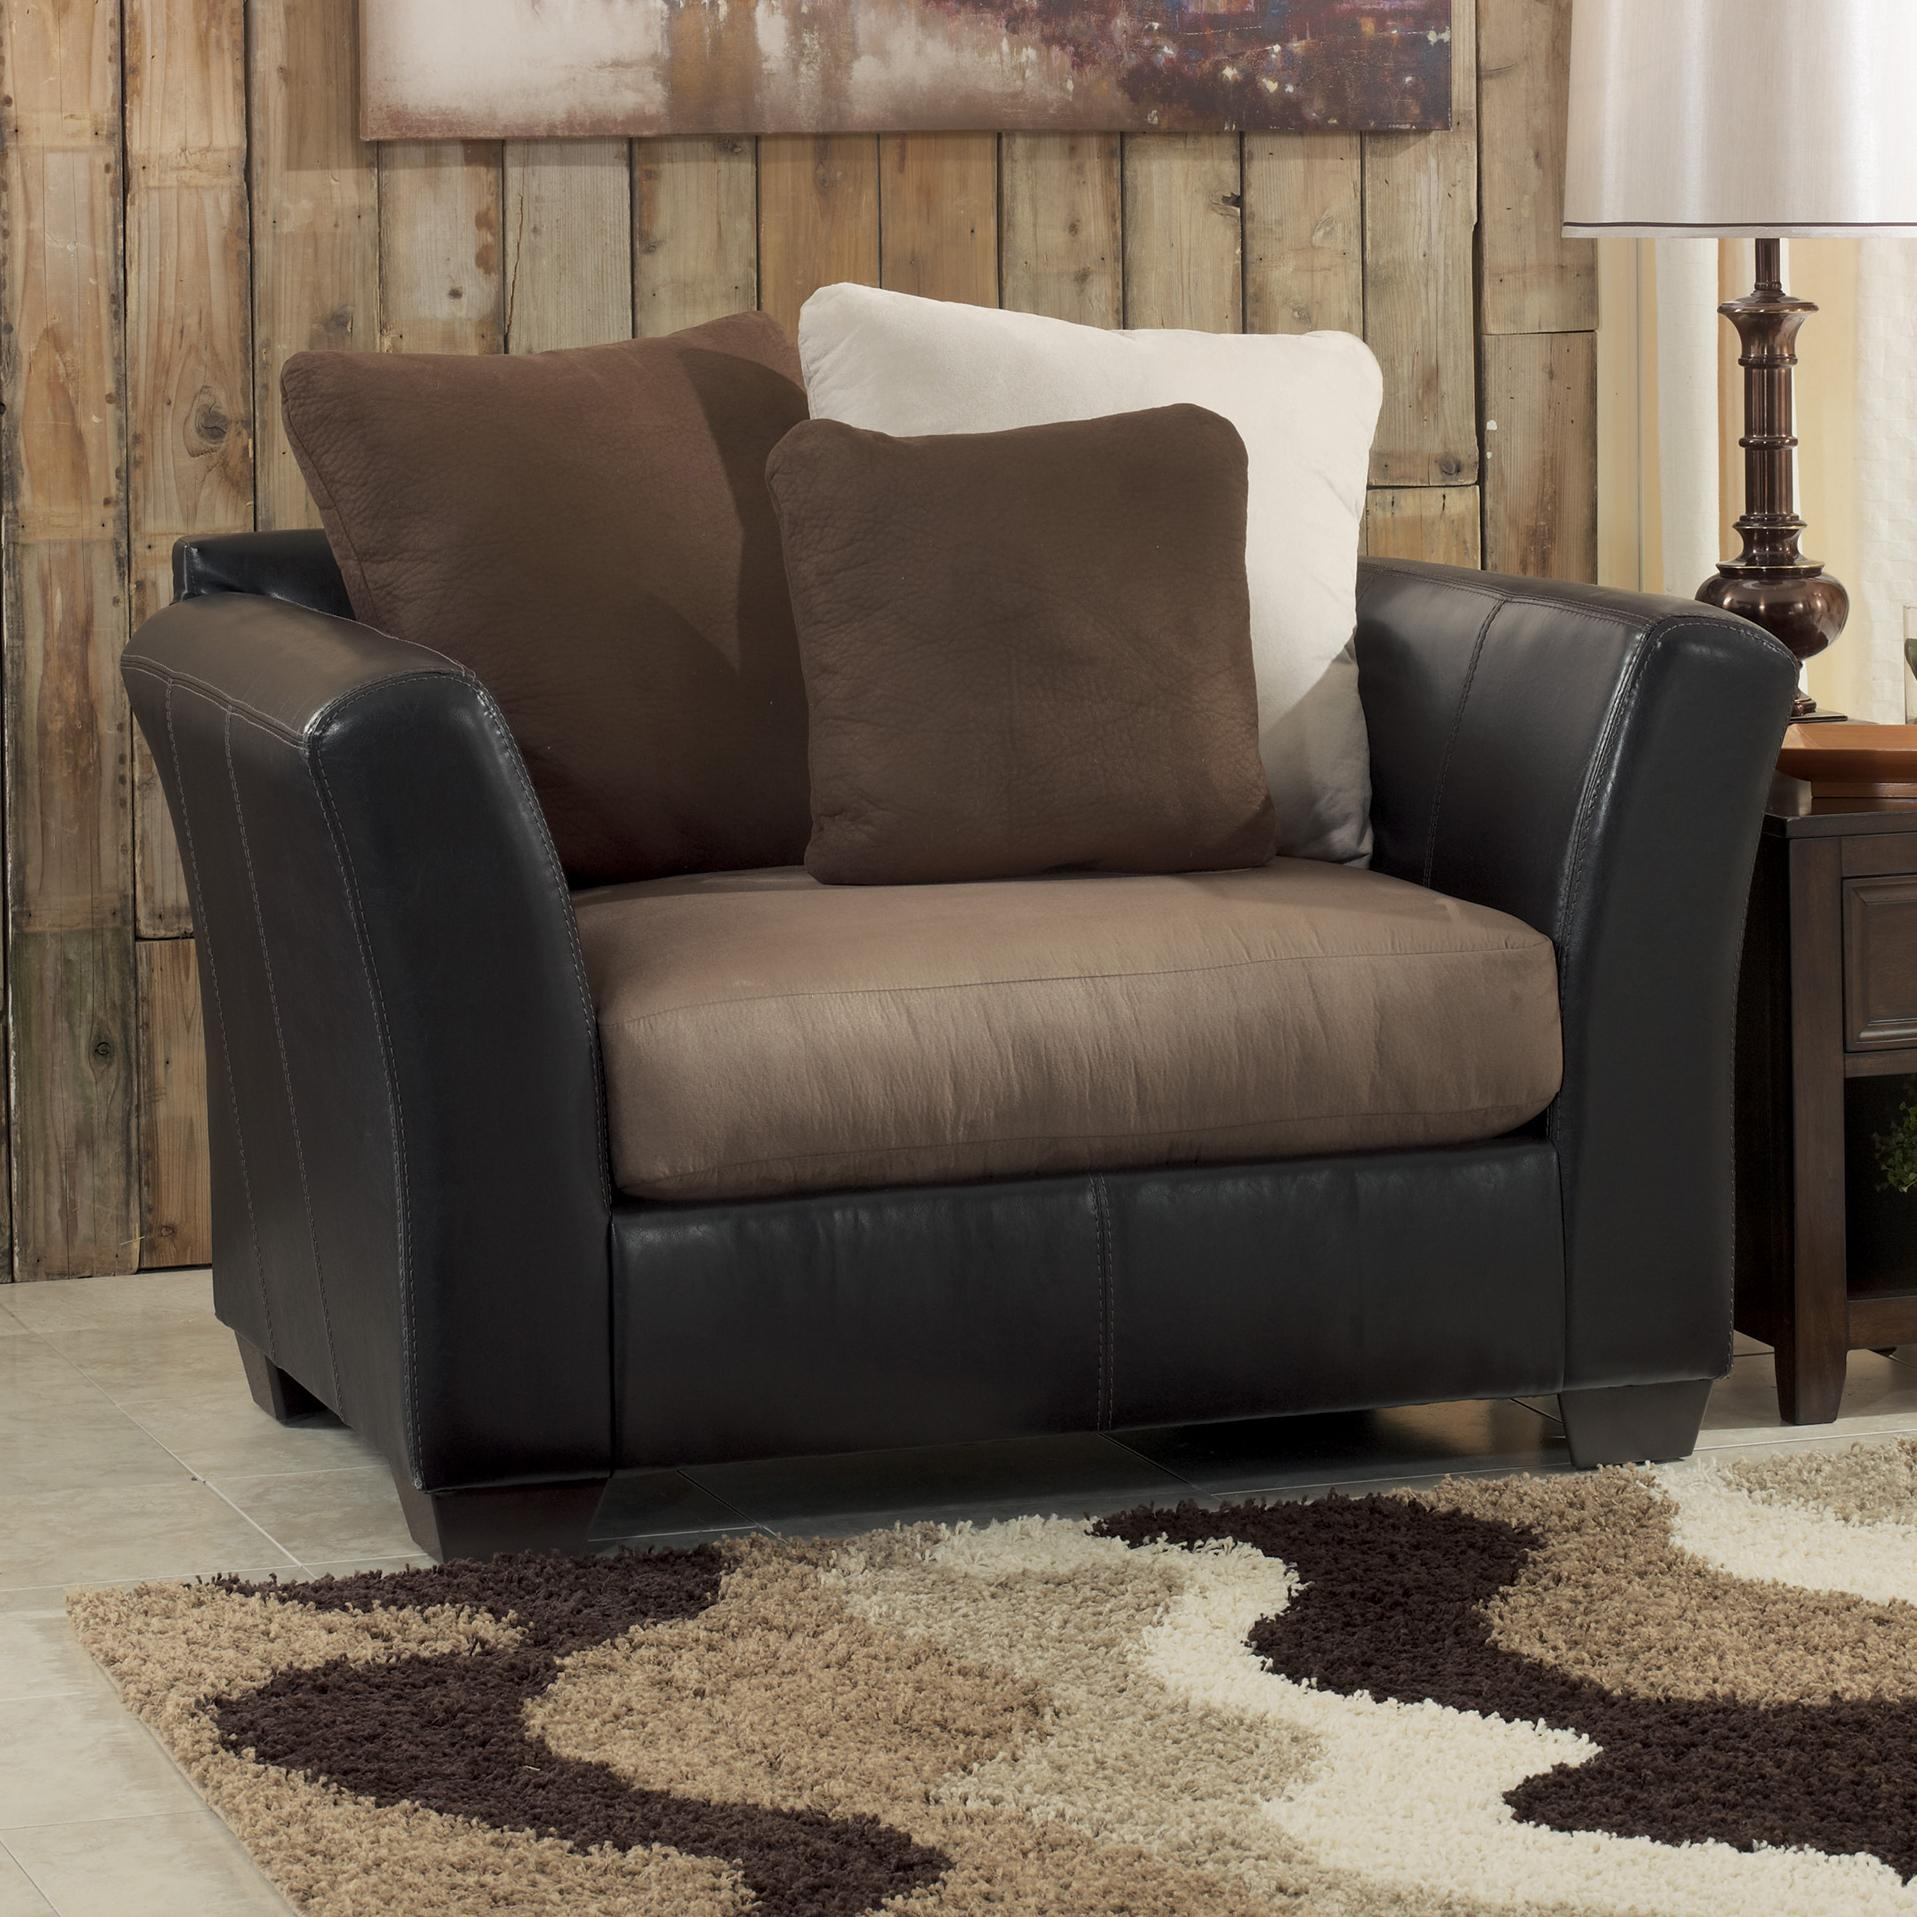 Benchcraft Masoli - Mocha Chair and a Half - Item Number: 1420123